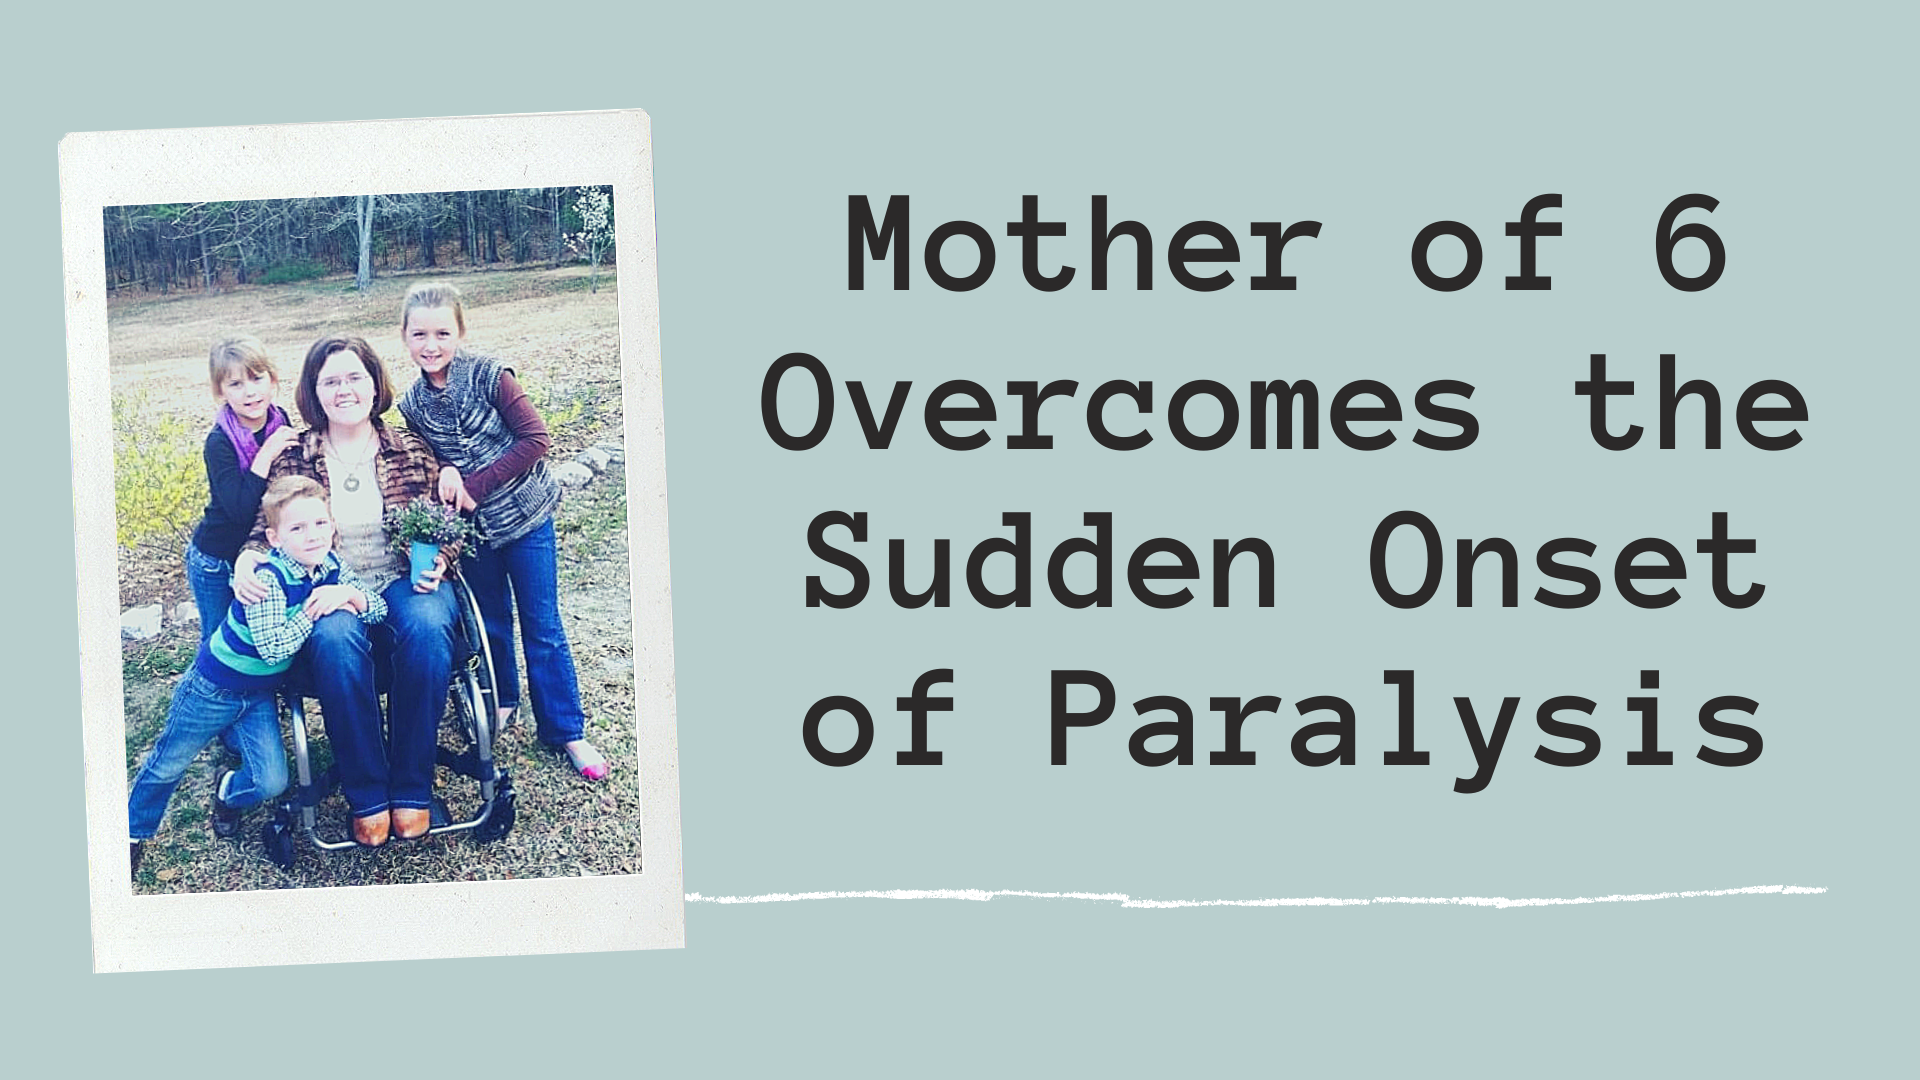 Copy of 10 24 Twitter - Mother of 6 Overcomes the Sudden Onset of Paralysis